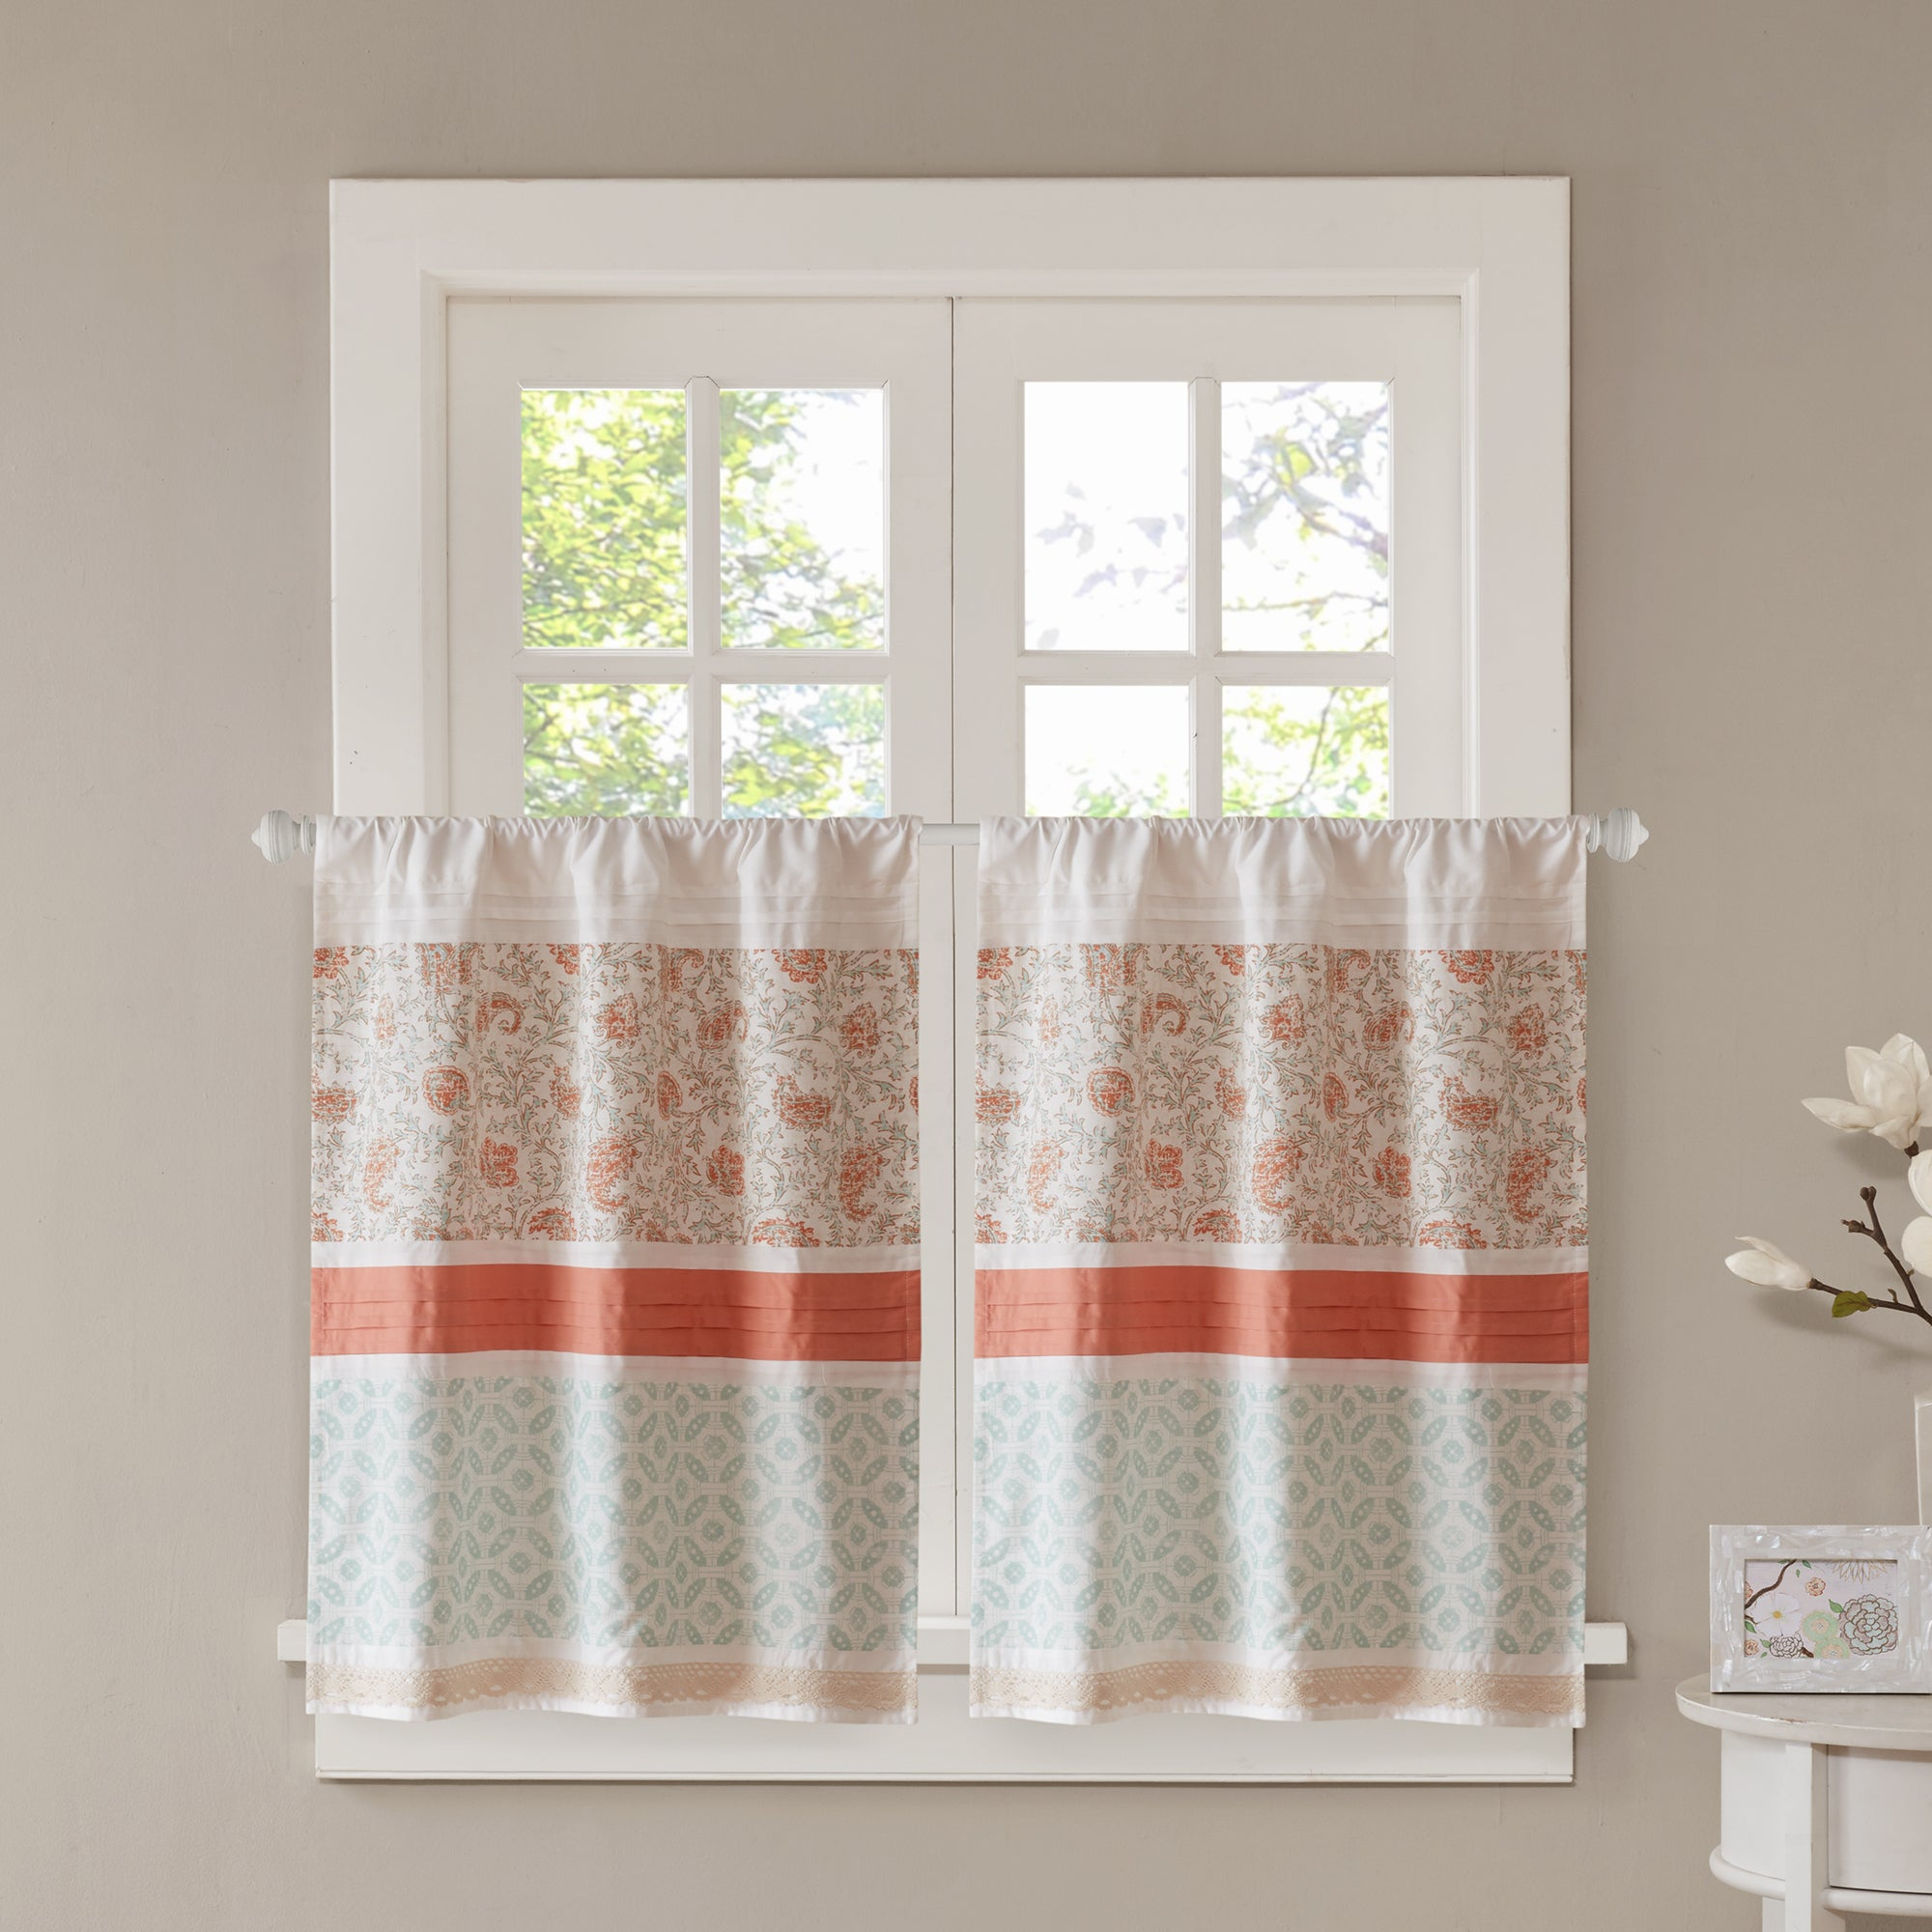 Copper Grove Aleza Printed And Pieces Rod Pocket Kitchen Tiers With Class Blue Cotton Blend Macrame Trimmed Decorative Window Curtains (View 9 of 20)